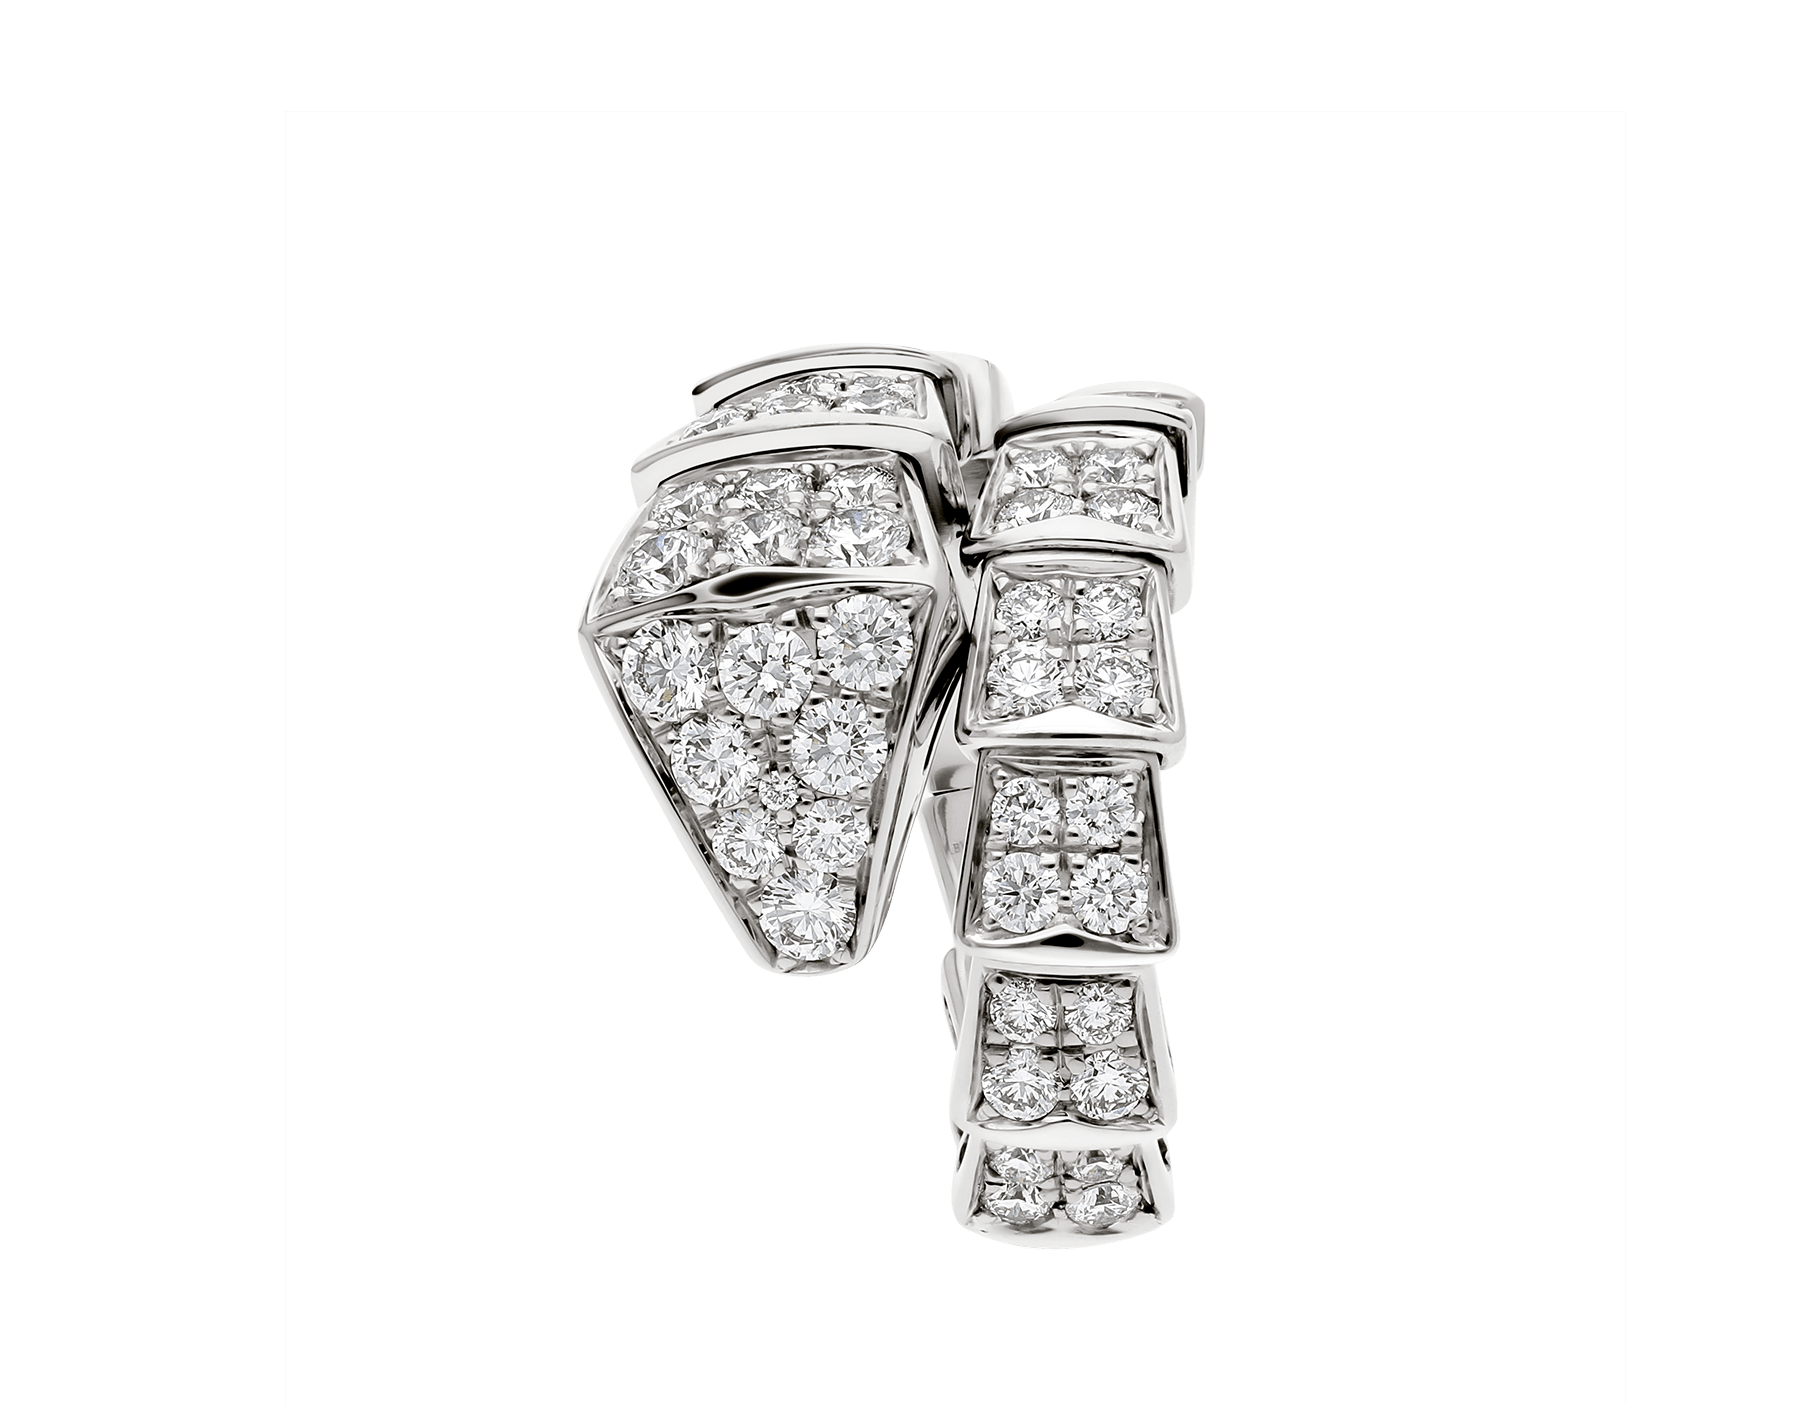 Serpenti one-coil ring in 18 kt white gold, set with full pavé diamonds. AN855116 image 4